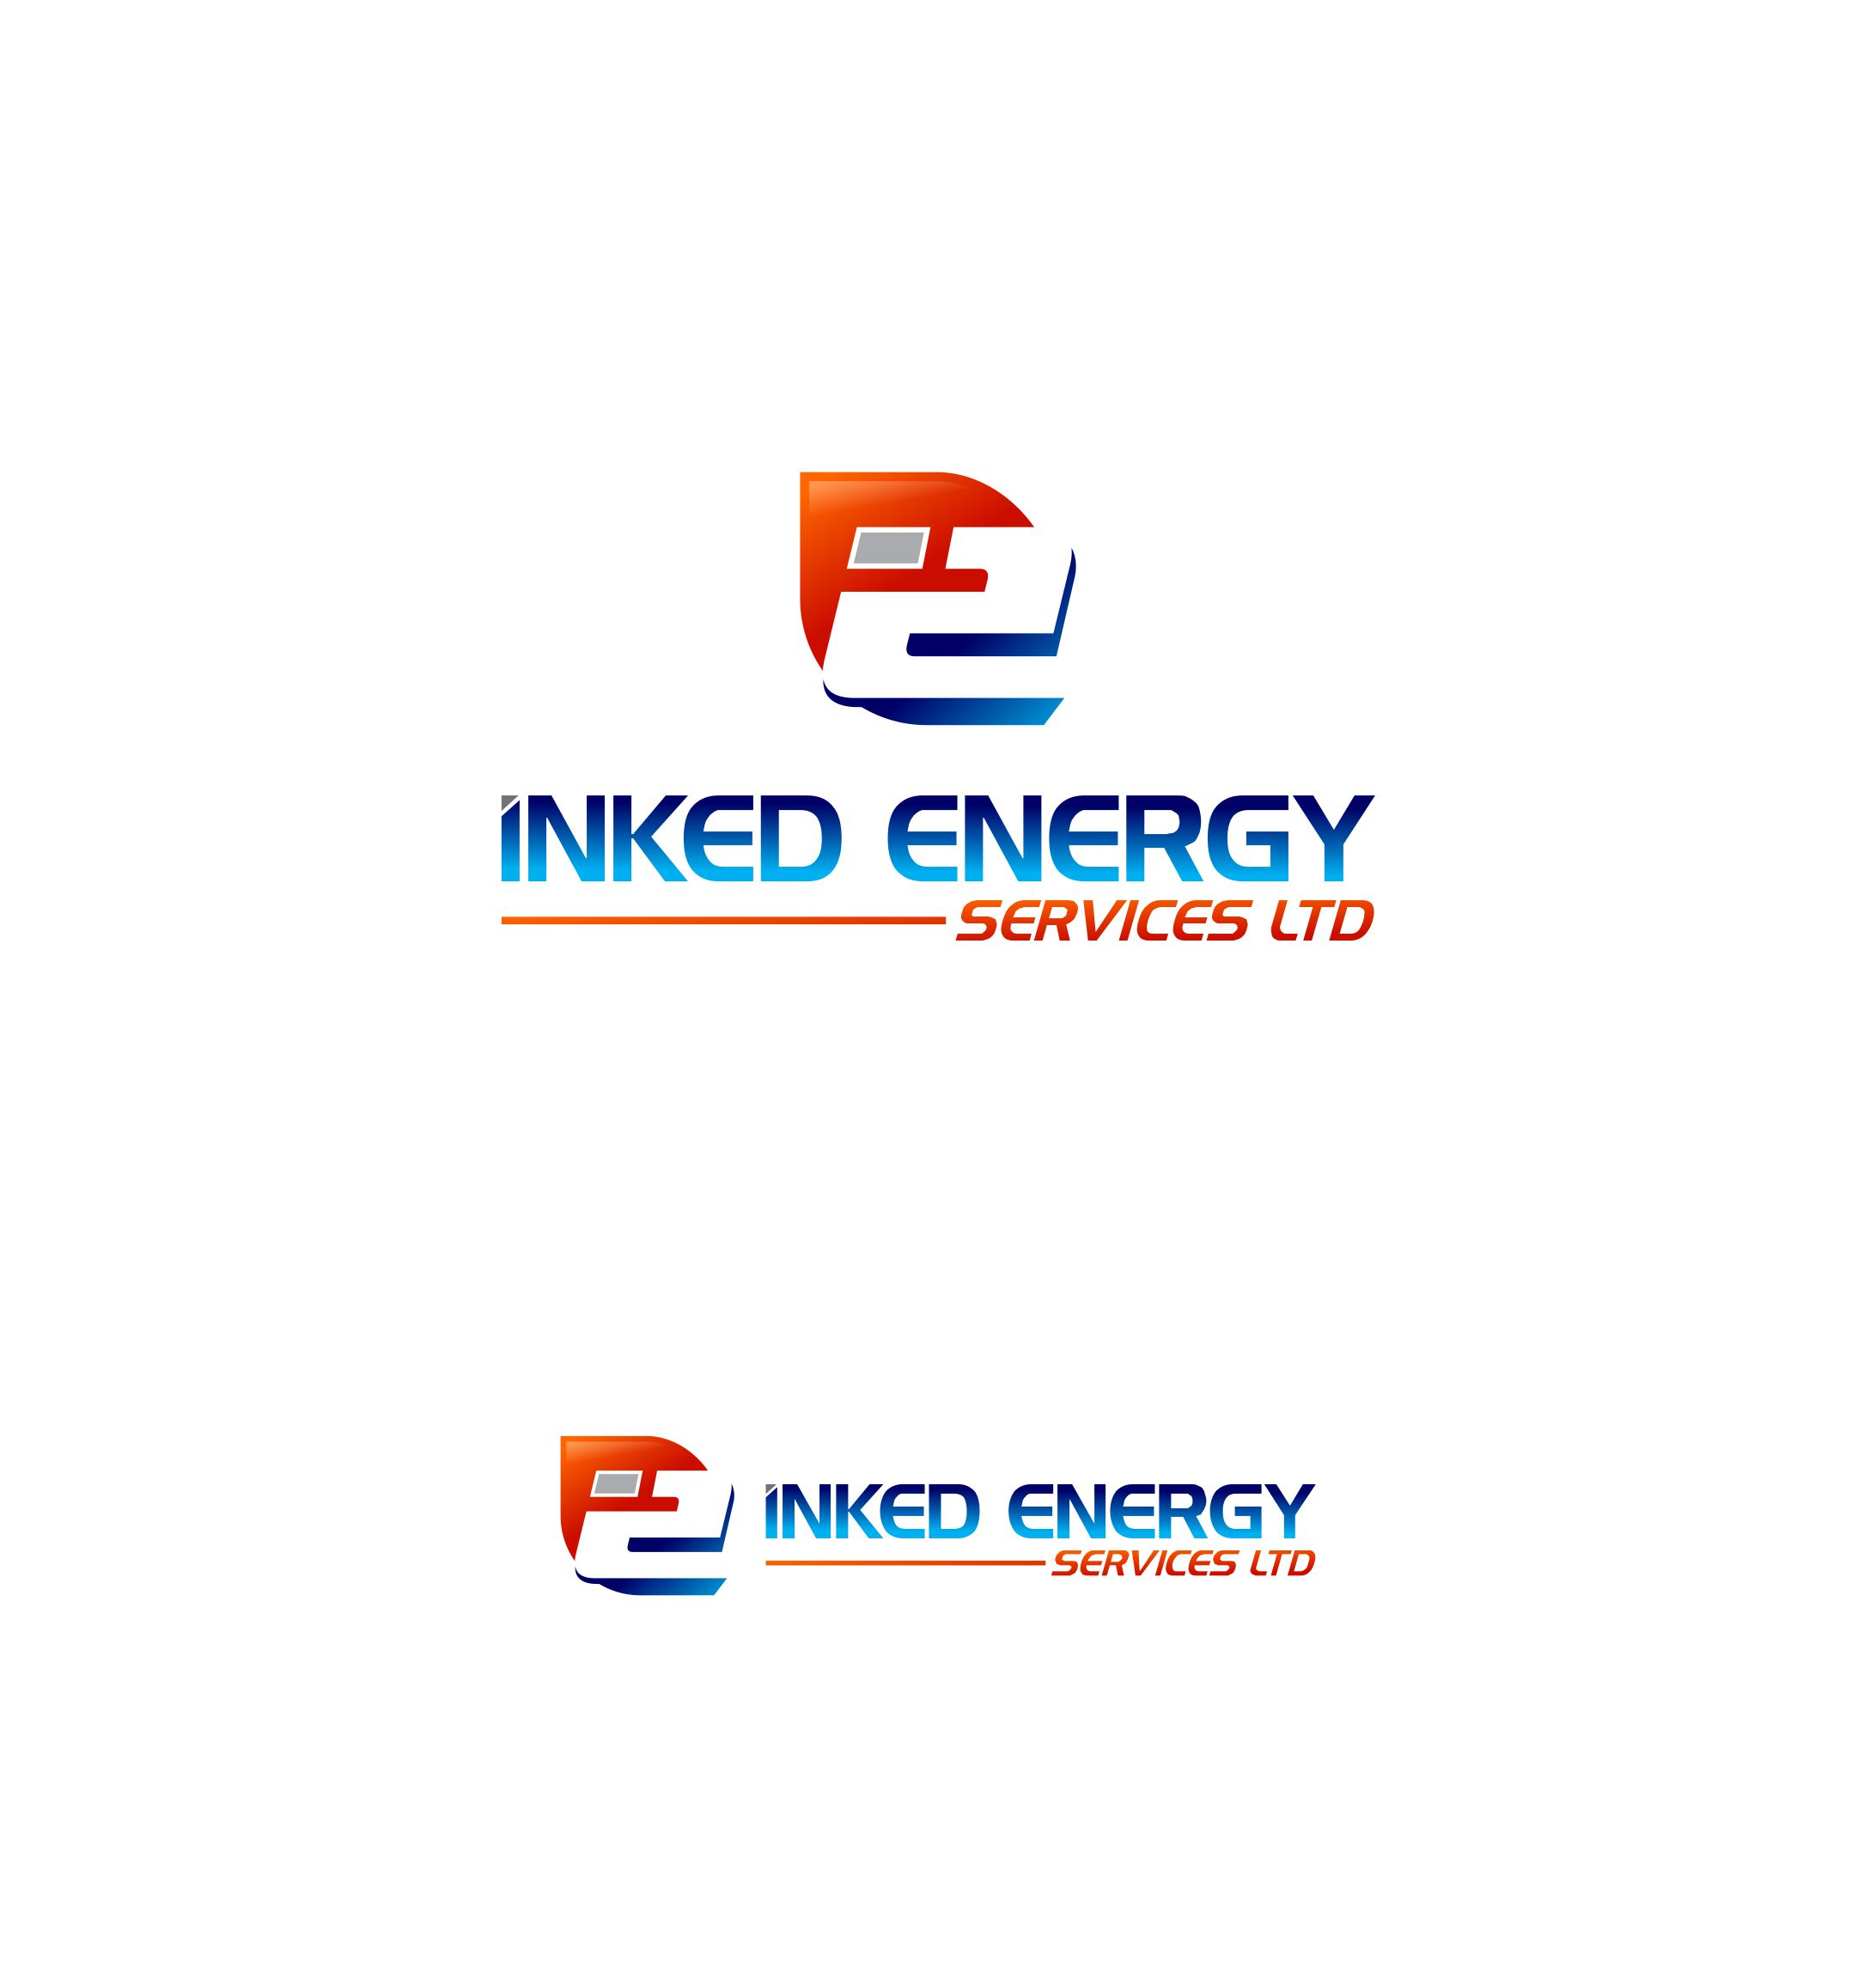 Logo Design by Raymond Garcia - Entry No. 139 in the Logo Design Contest Creative Logo Design for INKED ENERGY SERVICES LTD.